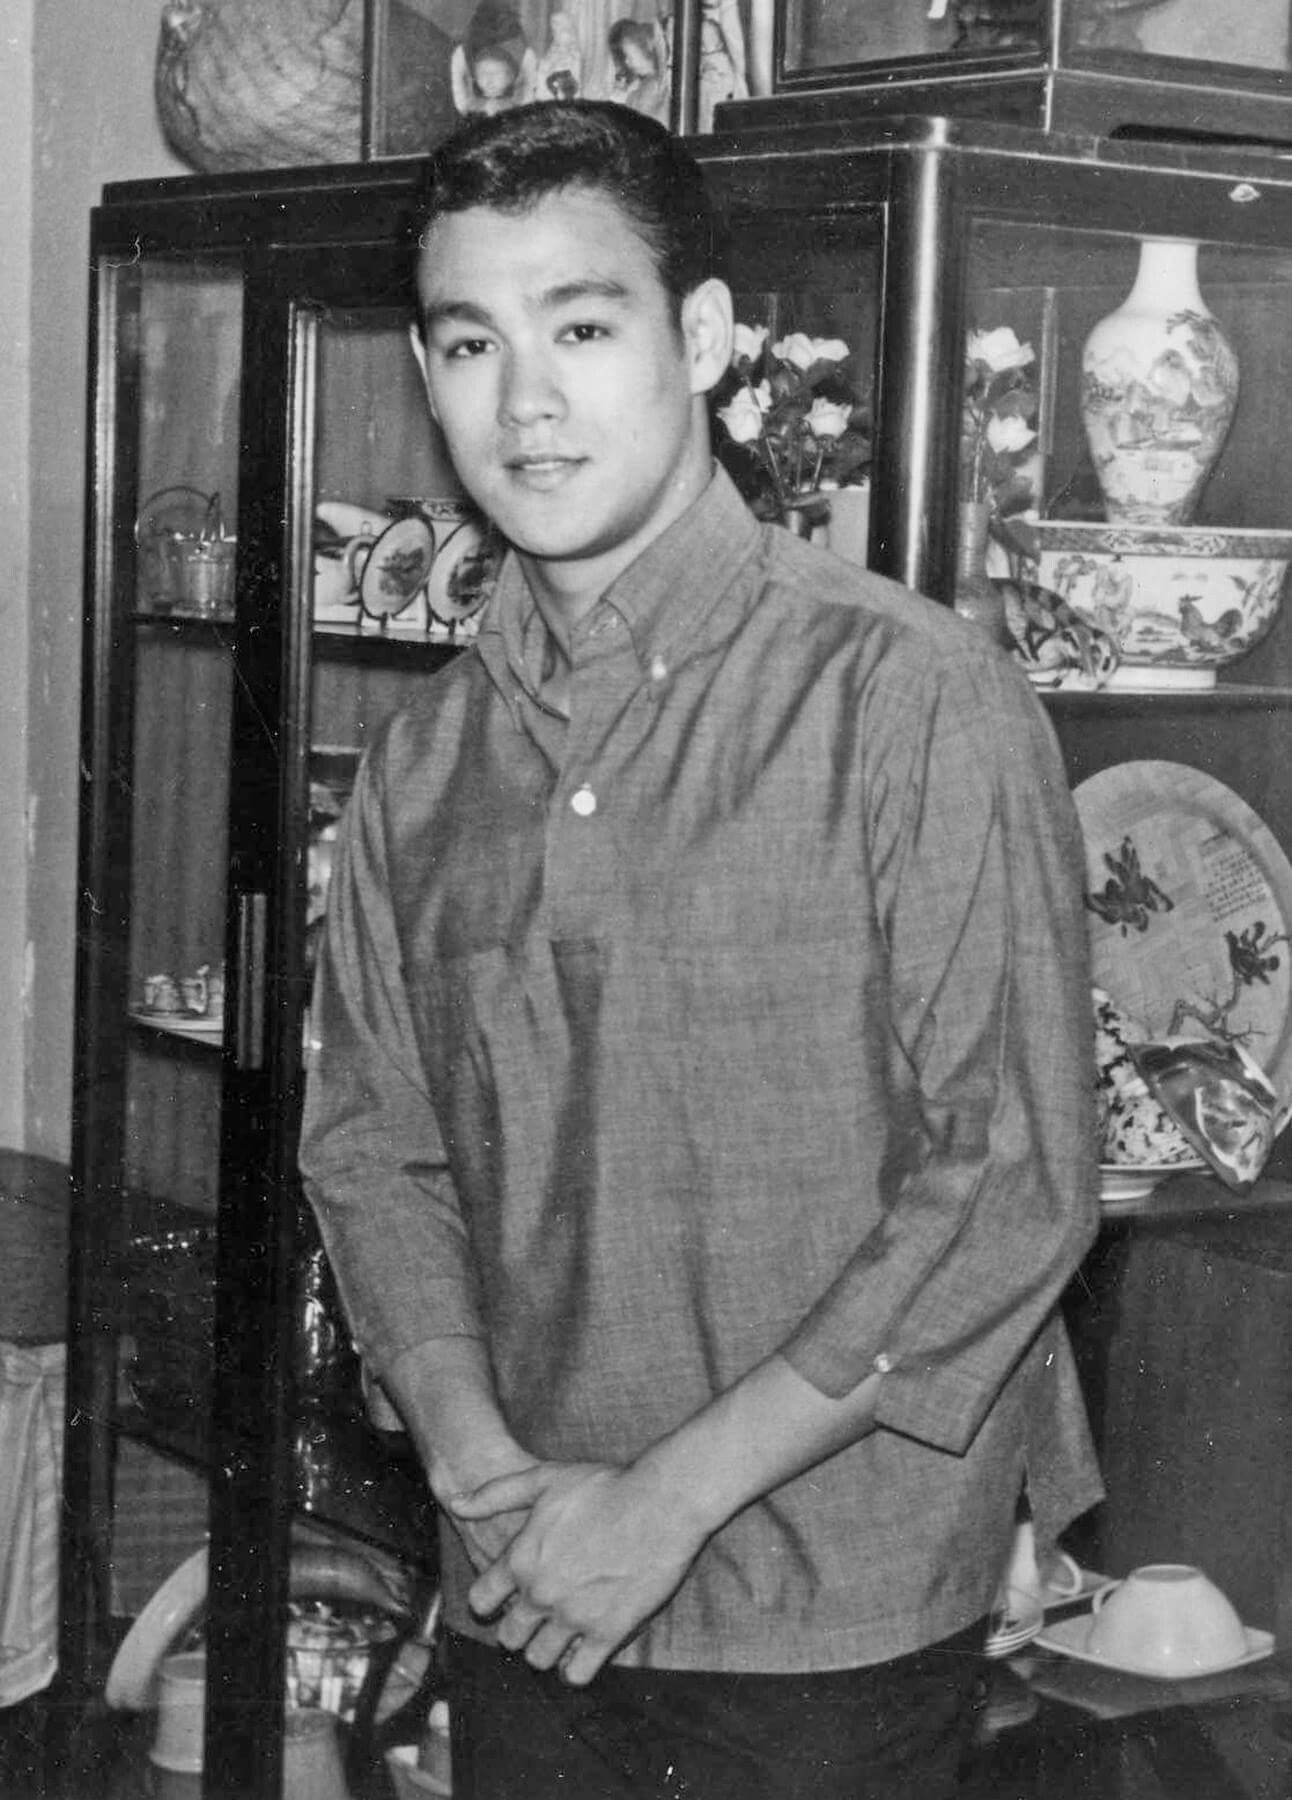 YOUNG MAN Bruce Lee | Bruce lee photos, Bruce lee, Bruce lee training